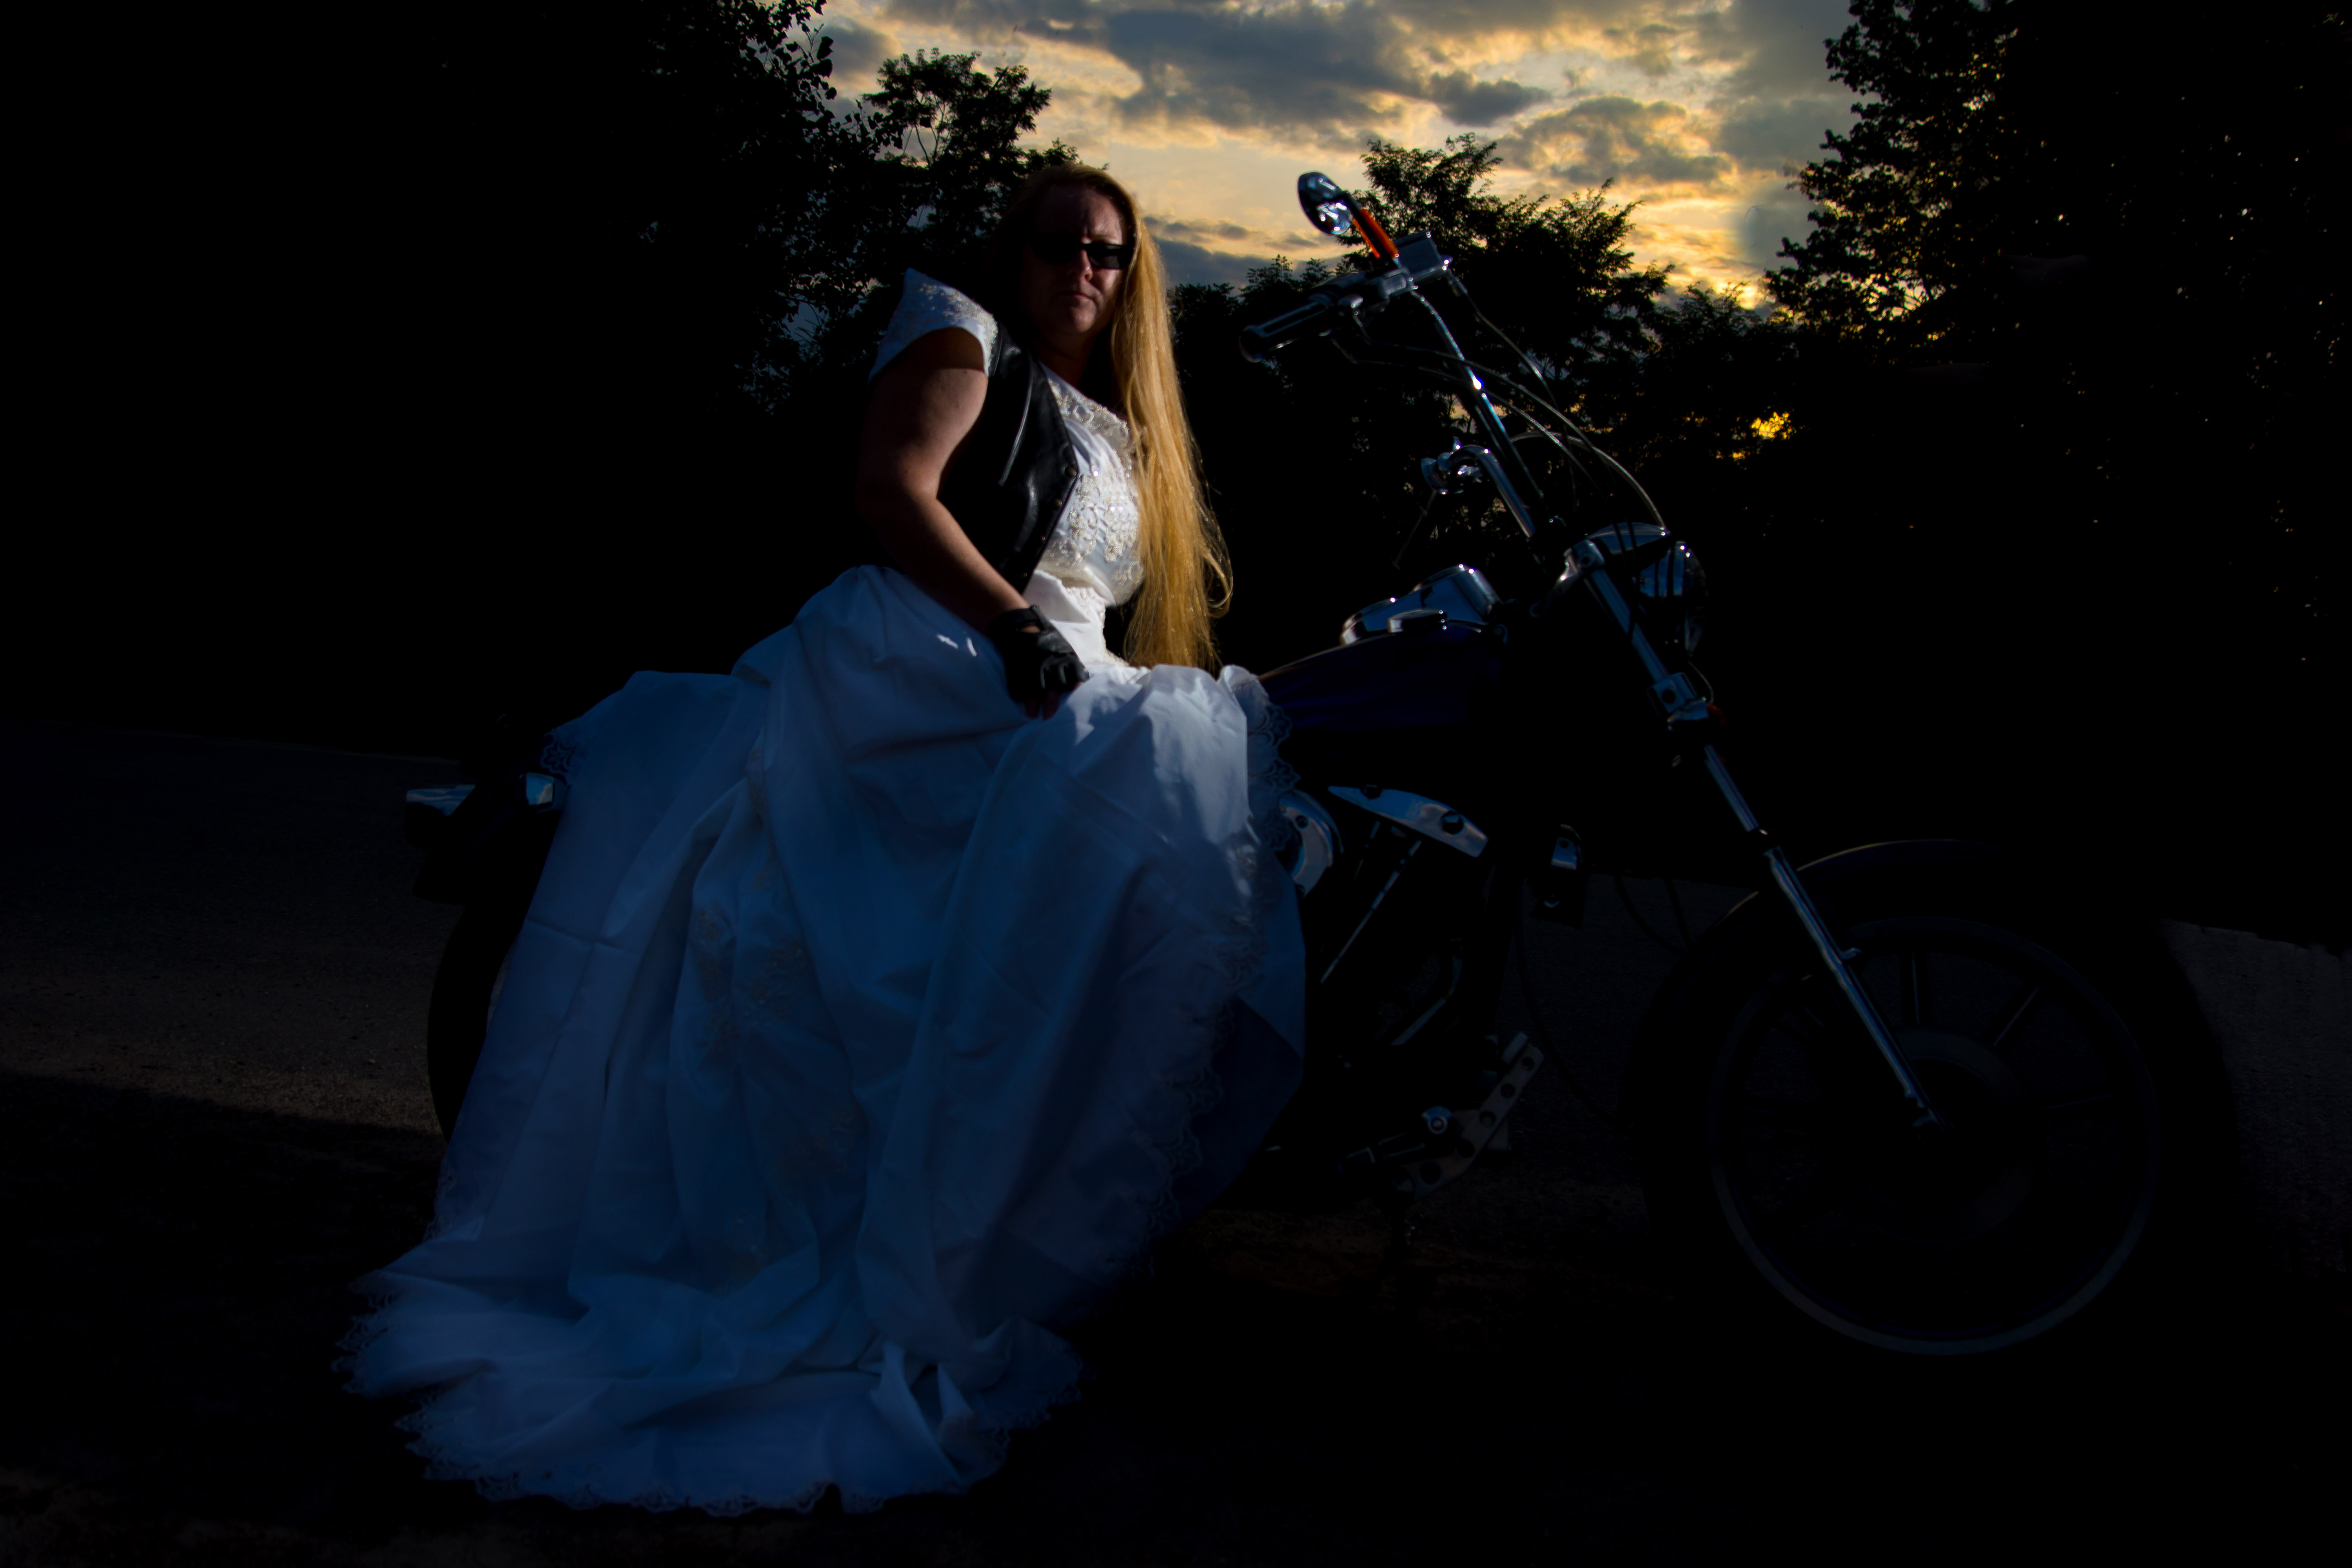 harley davidson harley davidson wedding dresses The very cool full circle moment backstory to this session is that Karin wore a wedding dress on a Harley for her first wedding